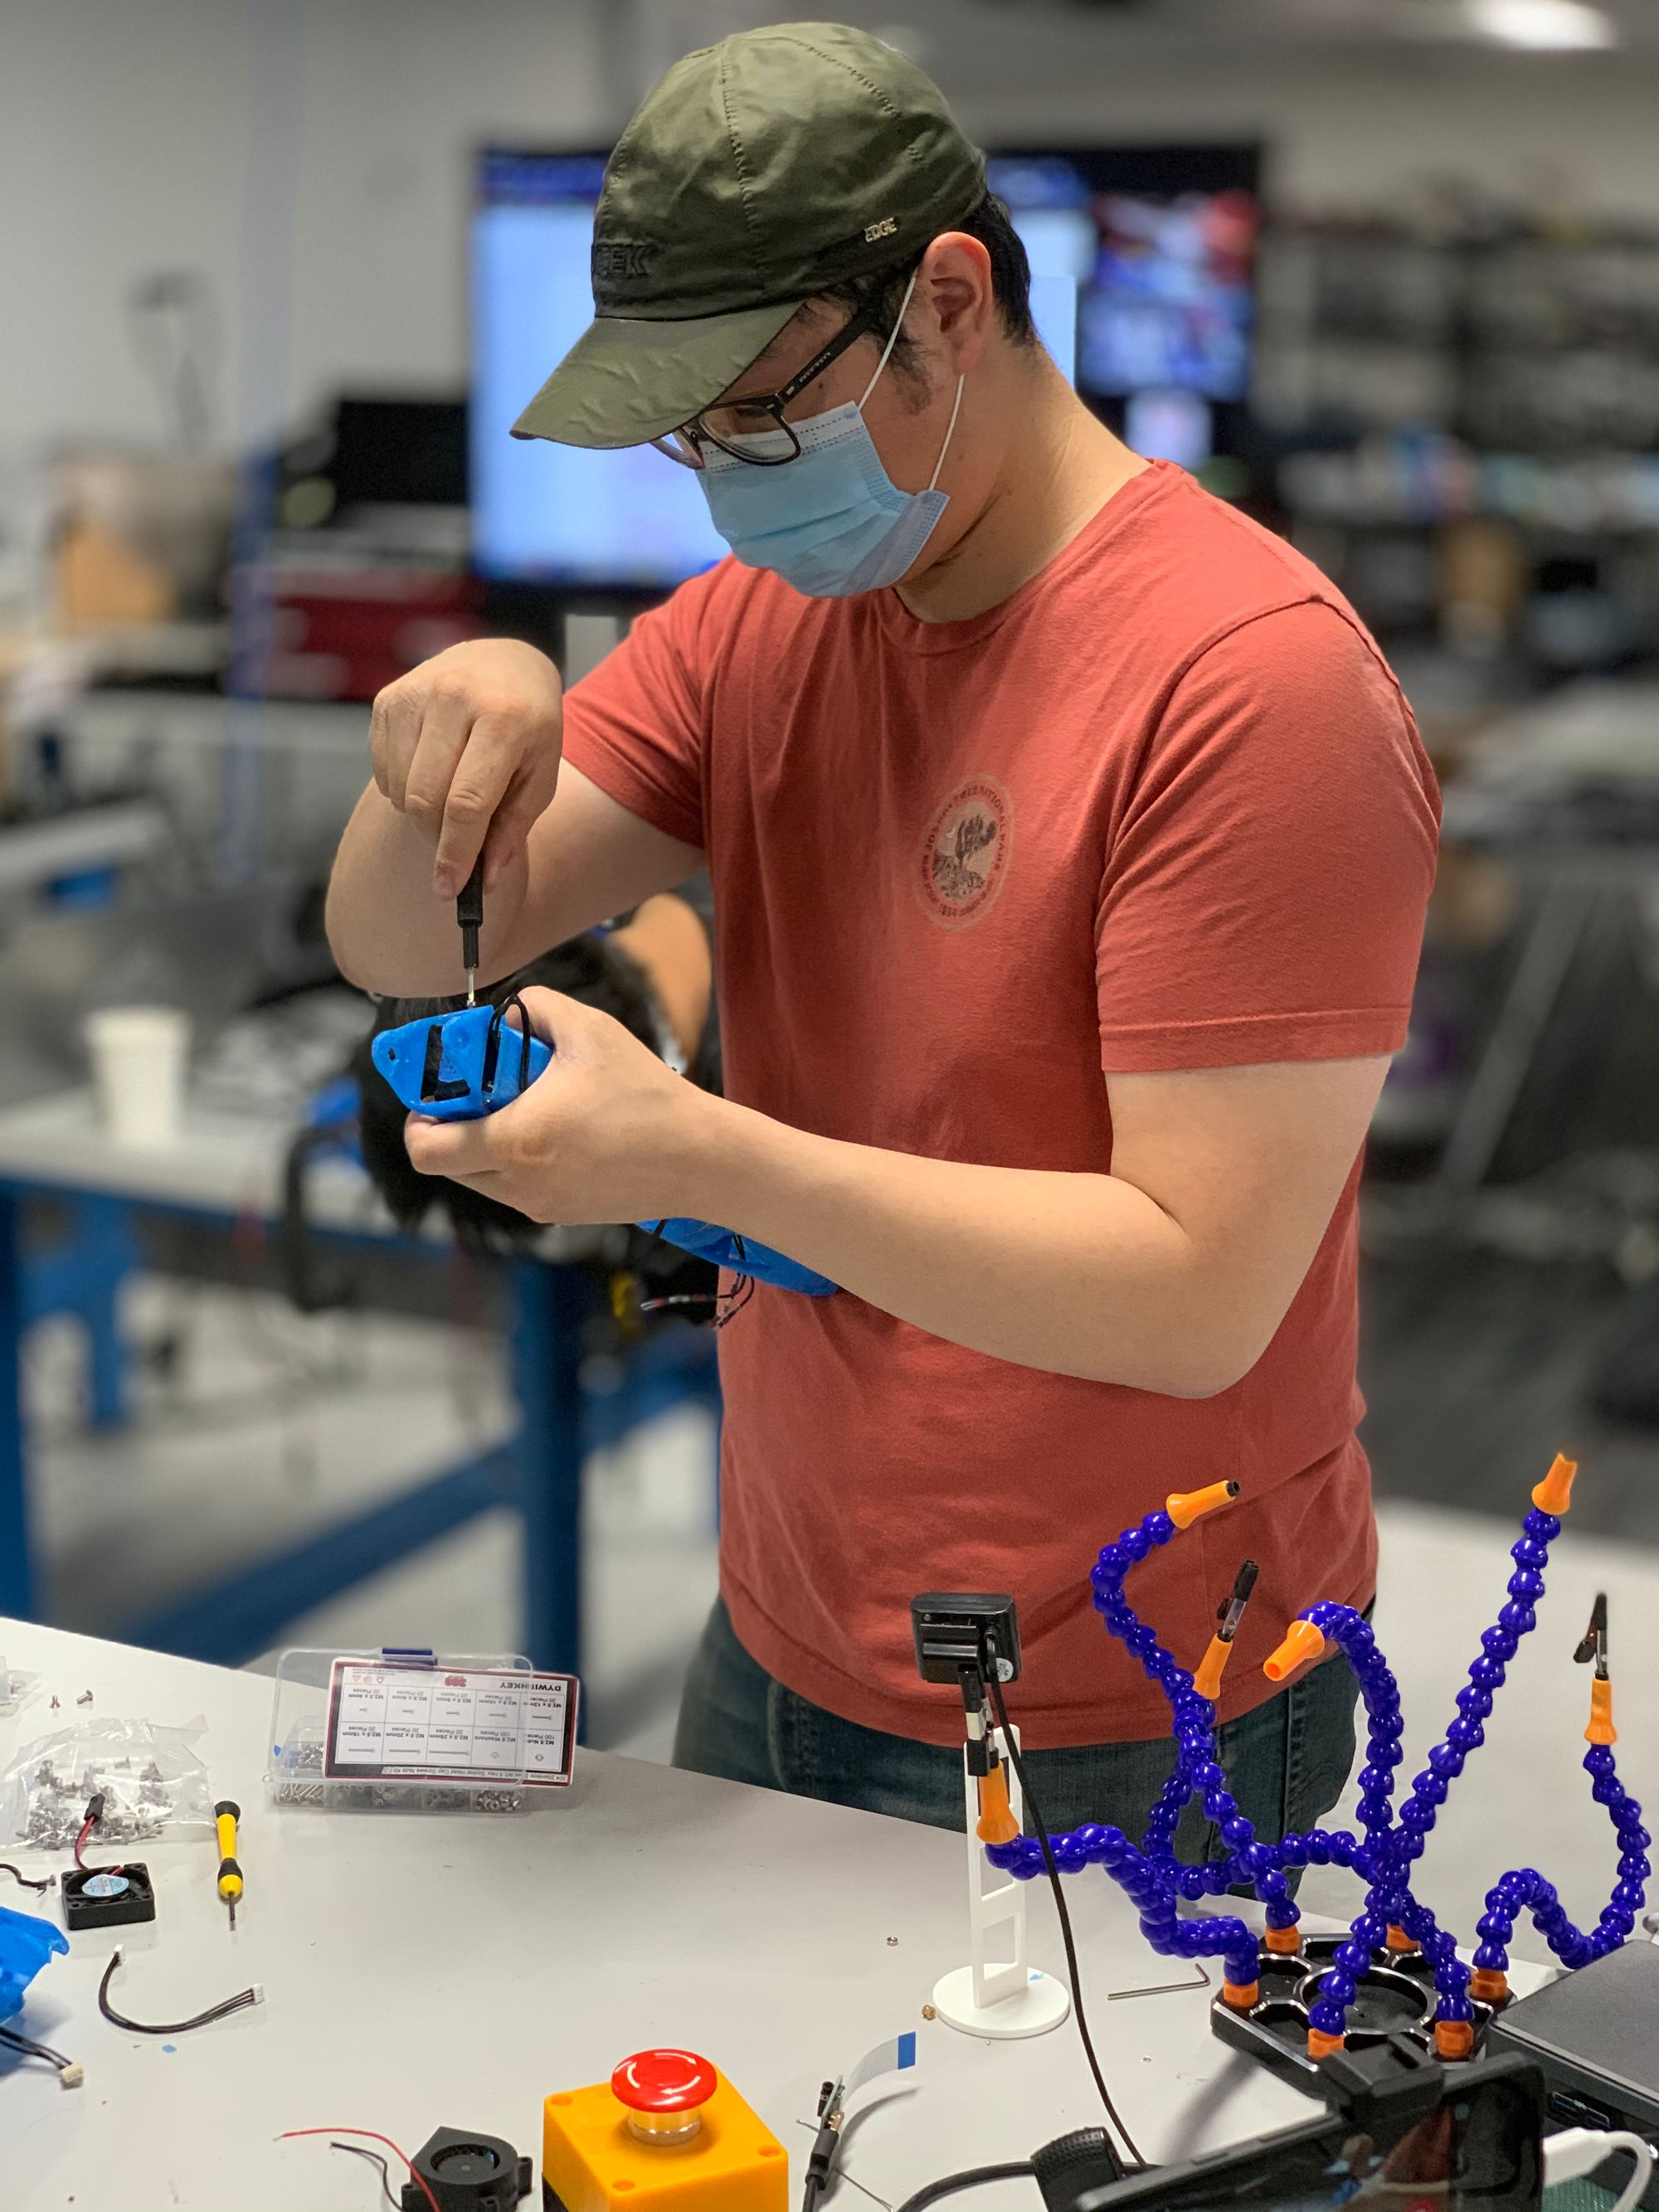 Fall CoLab student Logan assembling Reachy's arm in the Lab at Circuit Launch